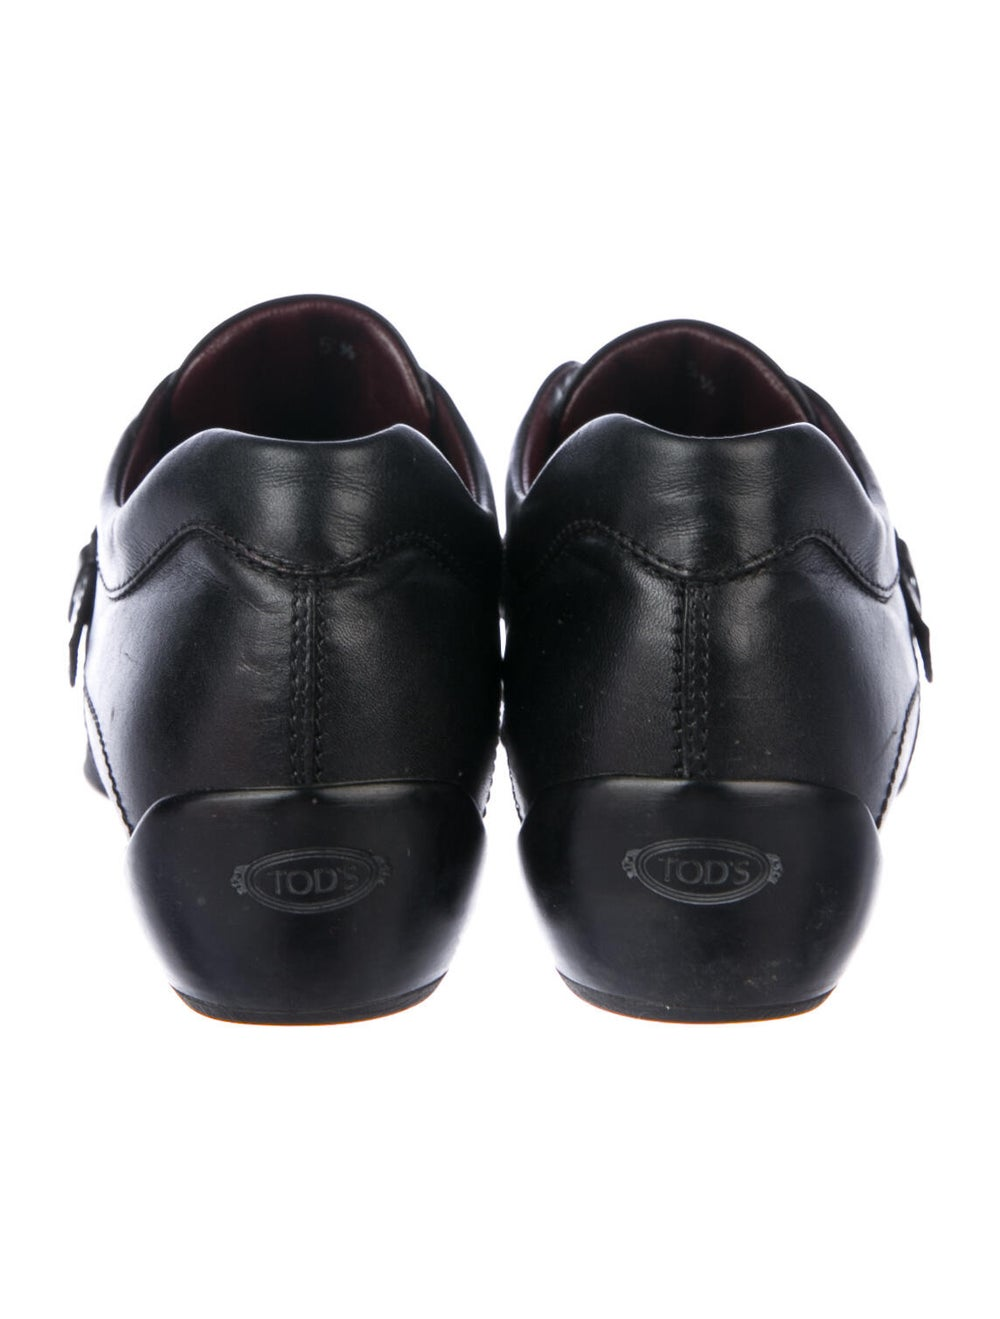 Tod's Leather Loafers Black - image 4